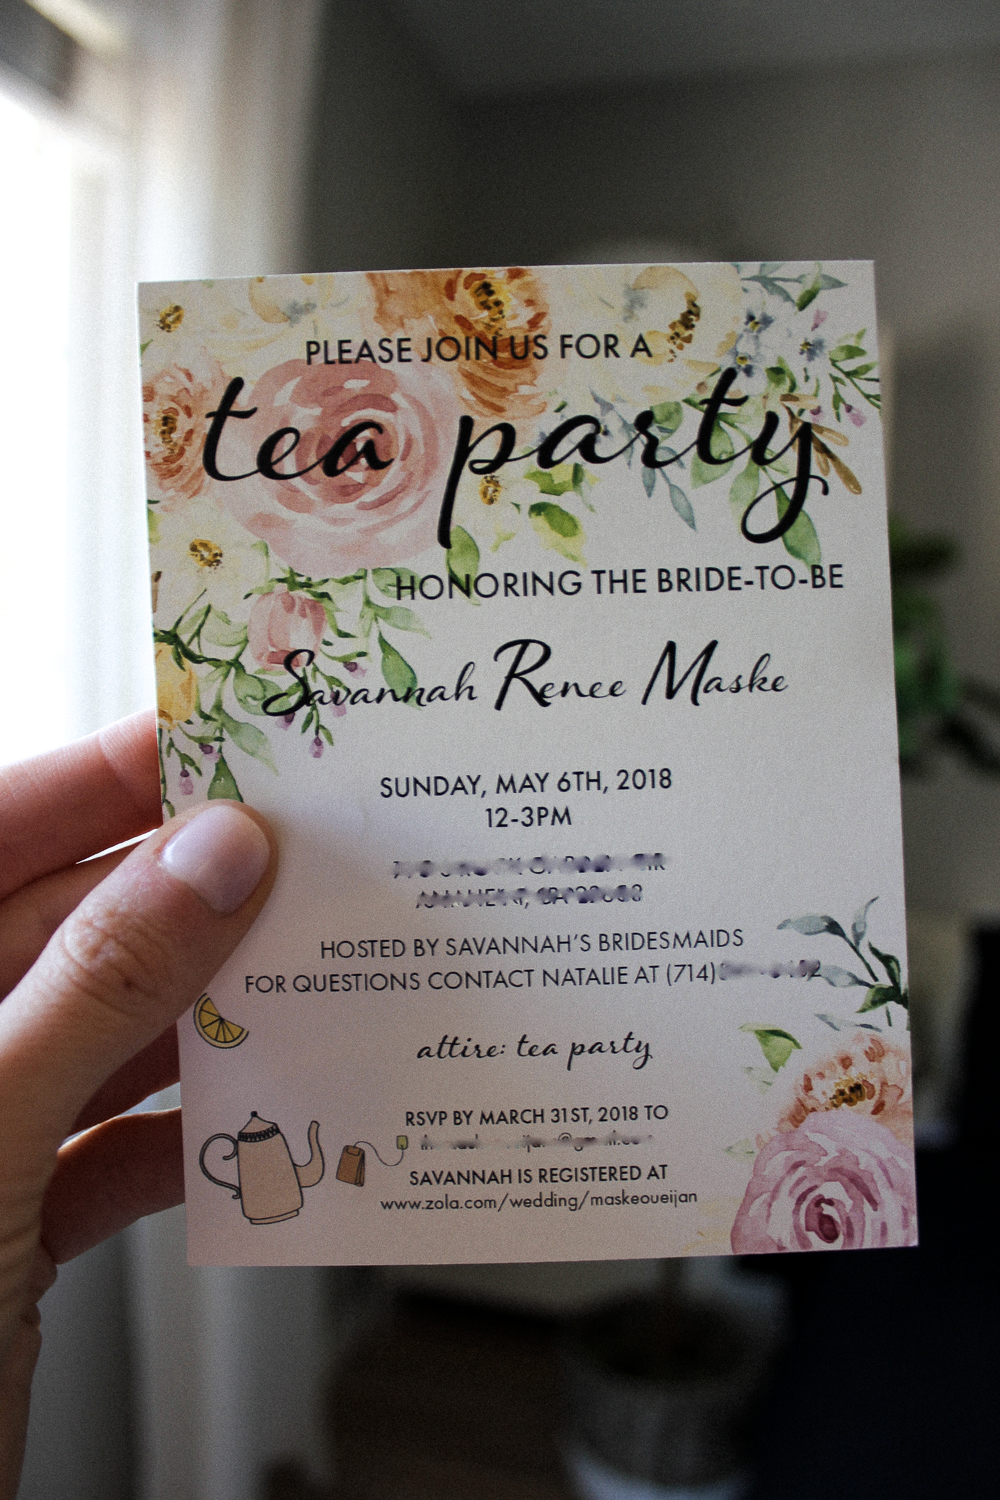 tea party bridal shower invite.jpg